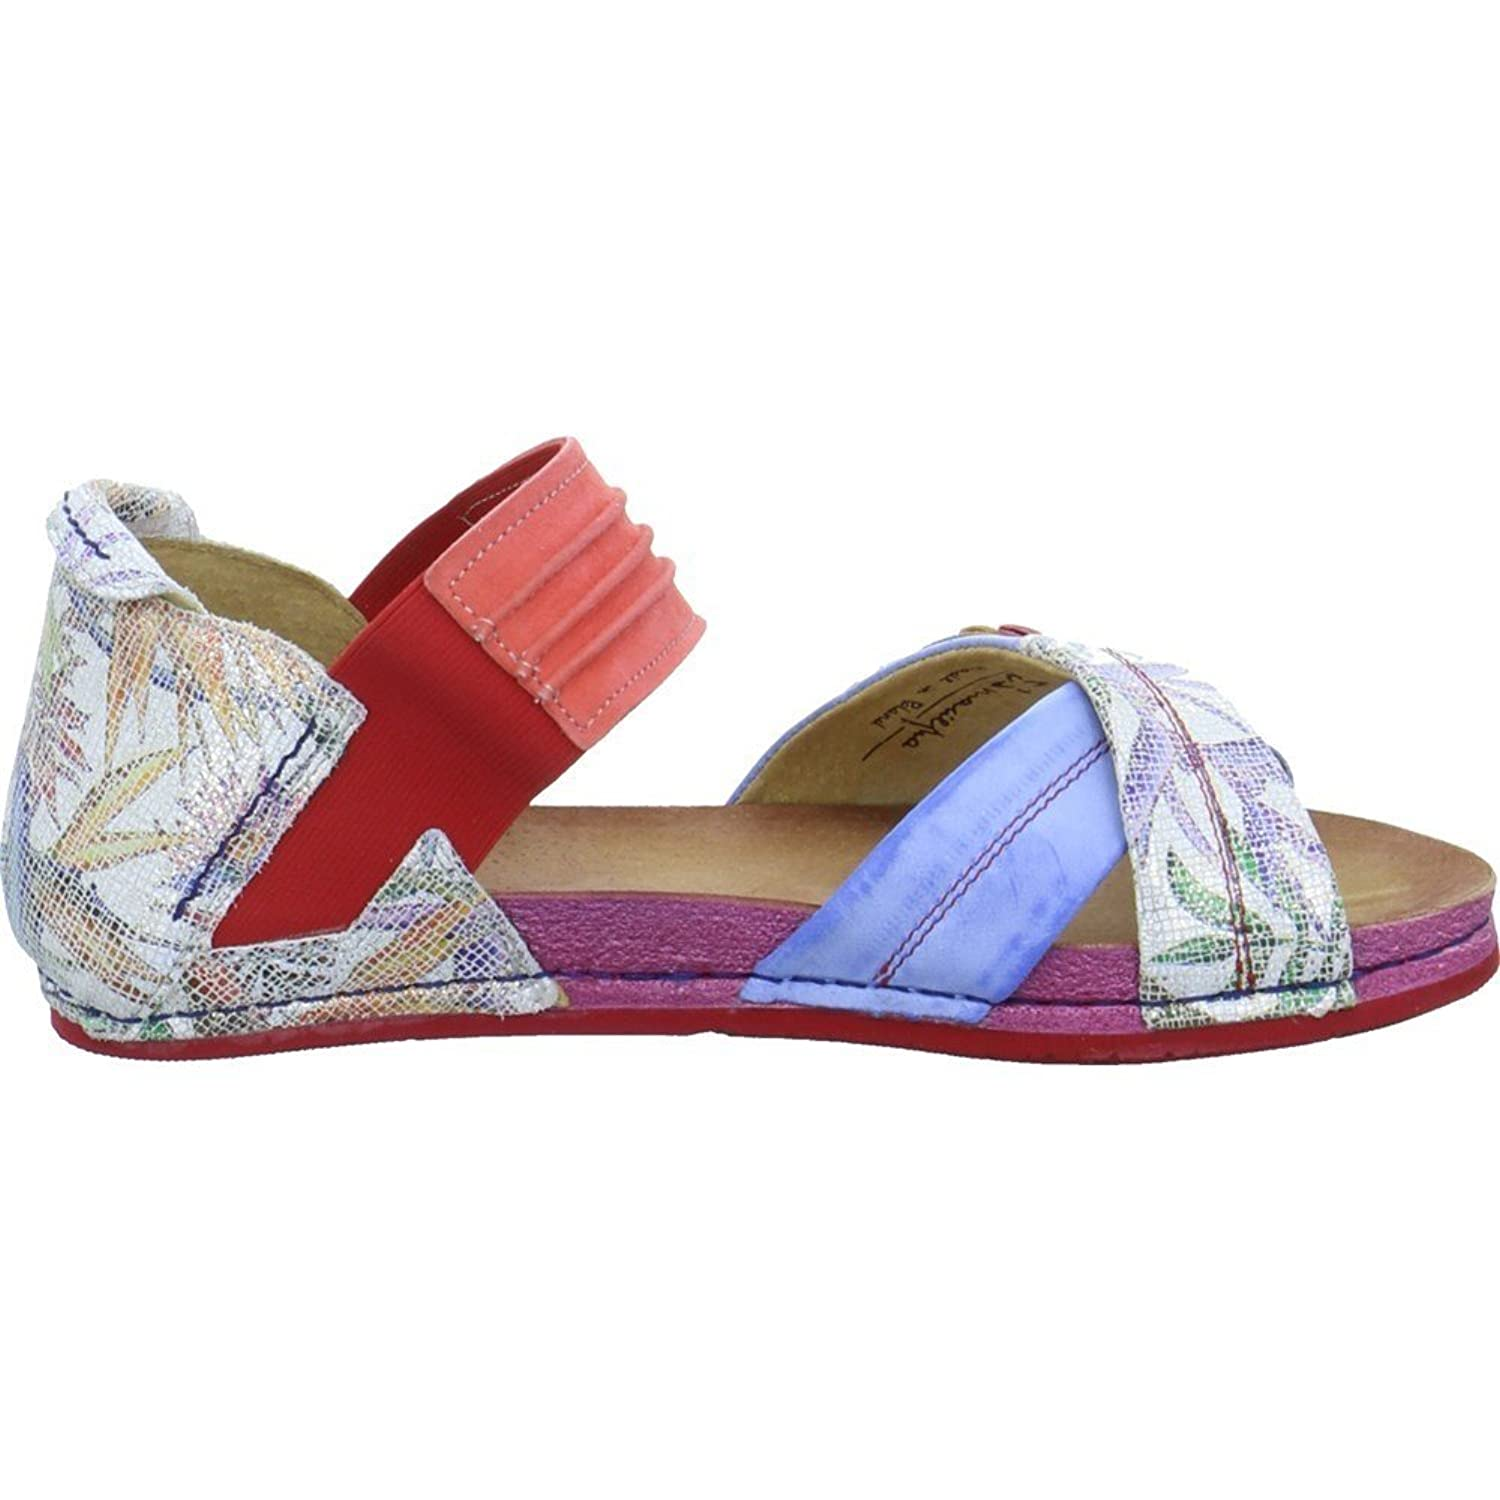 Shop For Clearance Supply Maciejka 03375 women's Sandals in Discount Classic Geniue Stockist Cheap Price Cheap Sale Affordable 5iydzVGY6